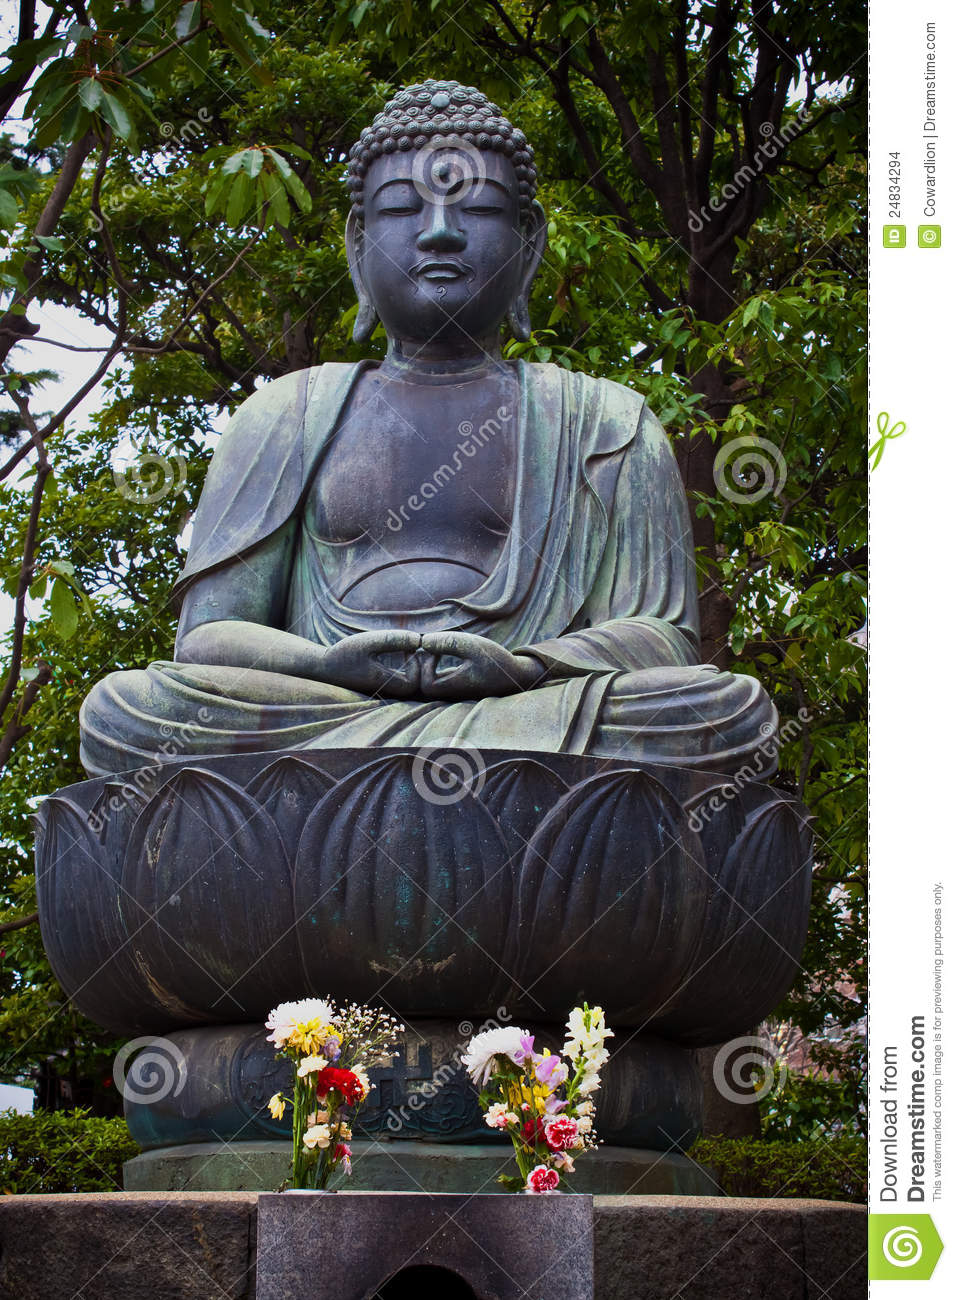 statue japonaise de bouddha images stock image 24834294. Black Bedroom Furniture Sets. Home Design Ideas